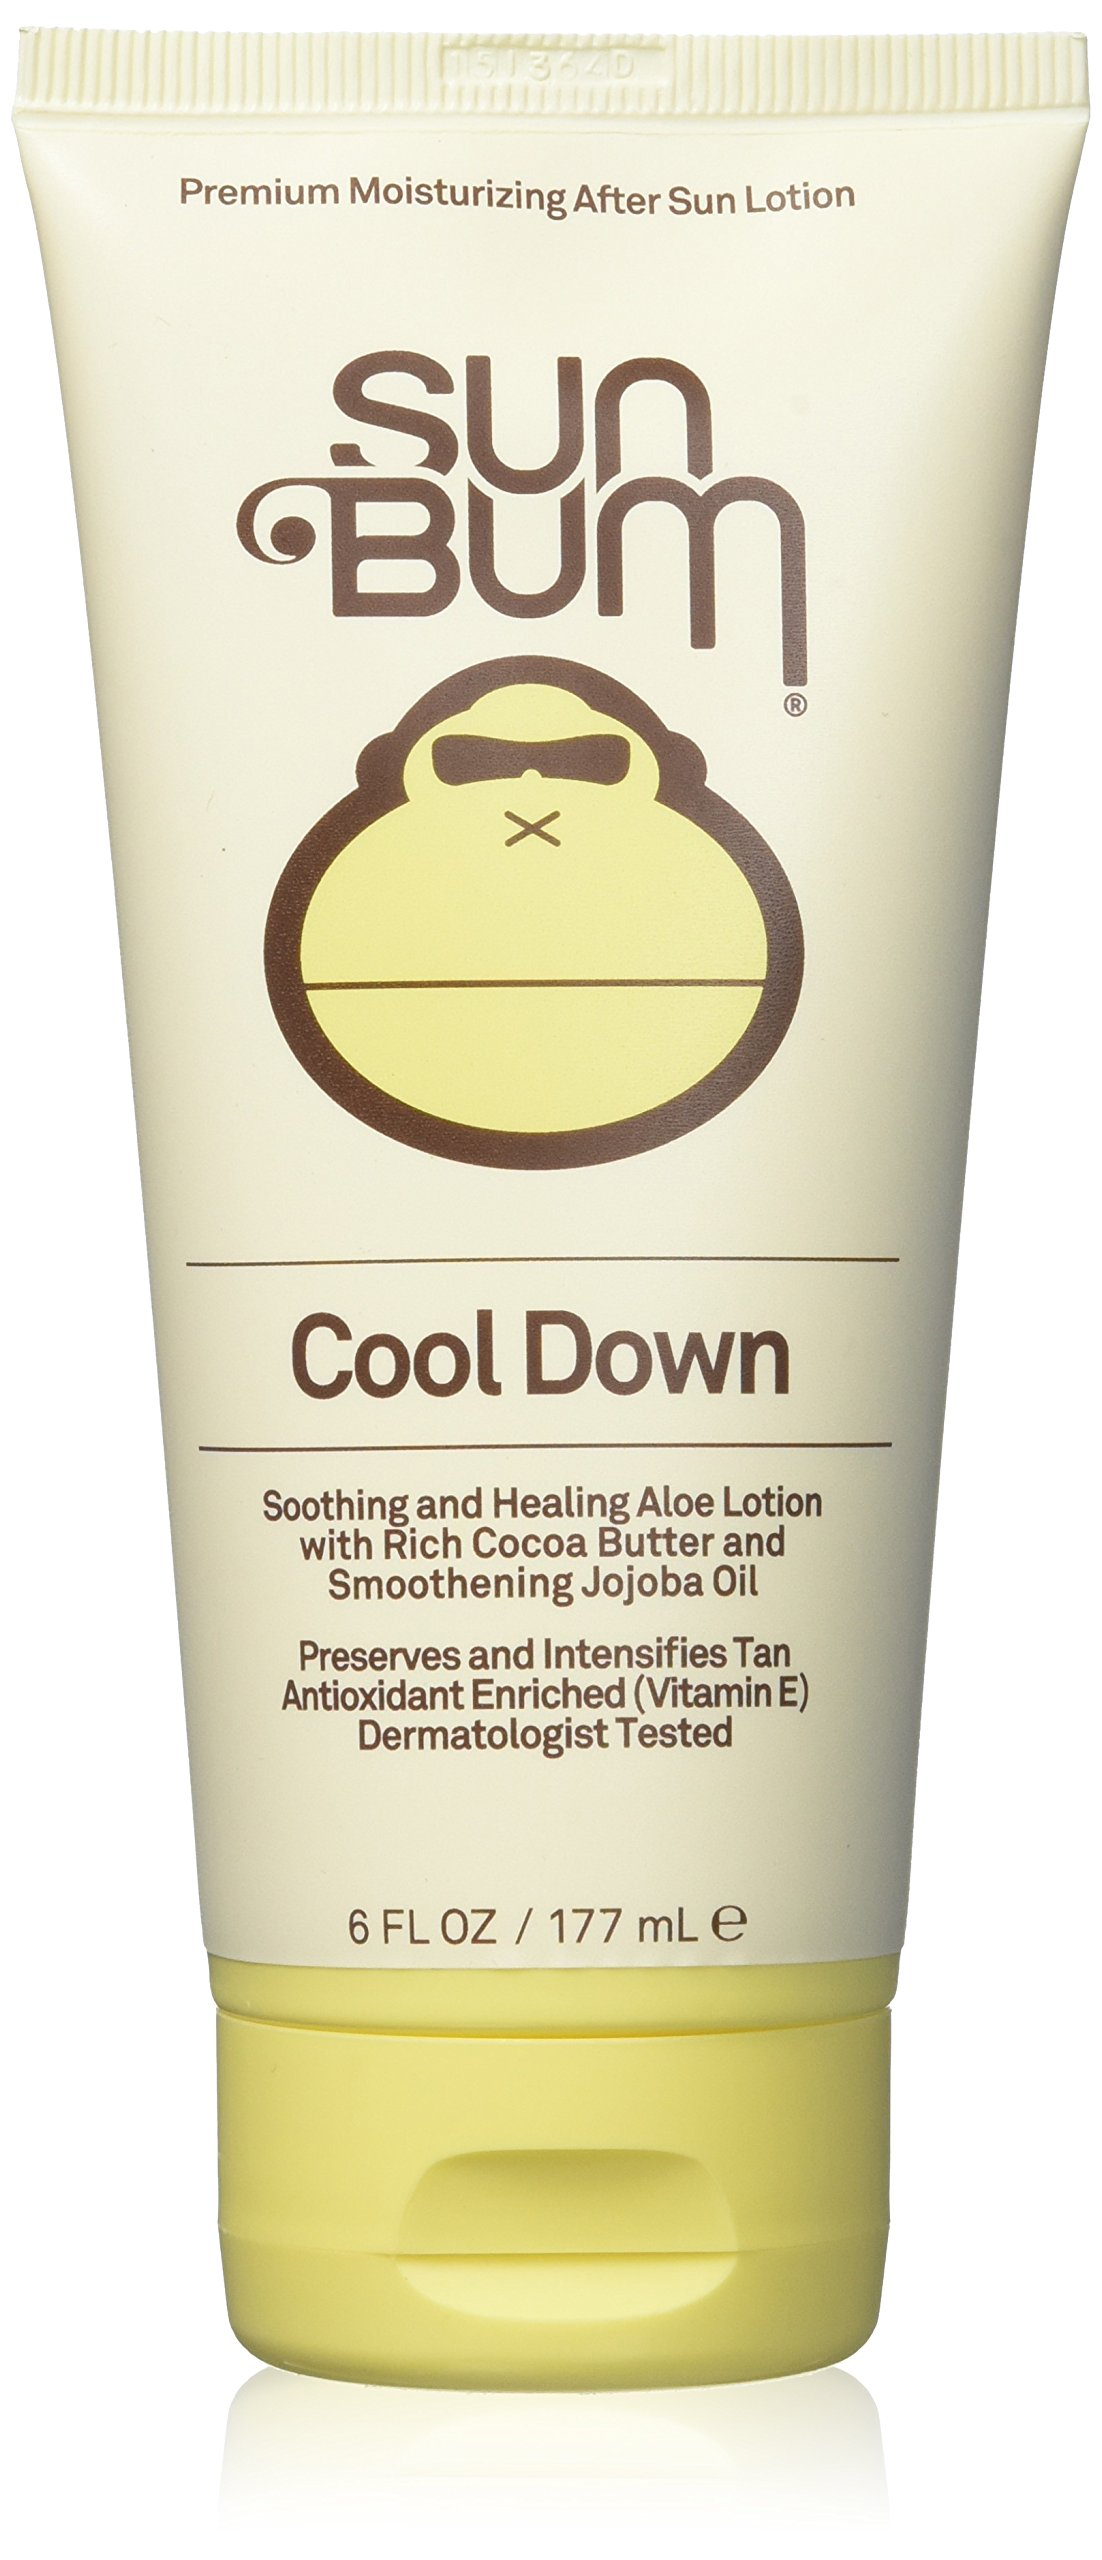 Sun Bum Cool Down Hydrating After Sun Lotion with Hydrating Aloe,Cocoa Butter and Vitamin E|Moisturizing Sun Burn Relief| Hypoallergenic, Gluten Free,Vegan|6ozTube by Sun Bum